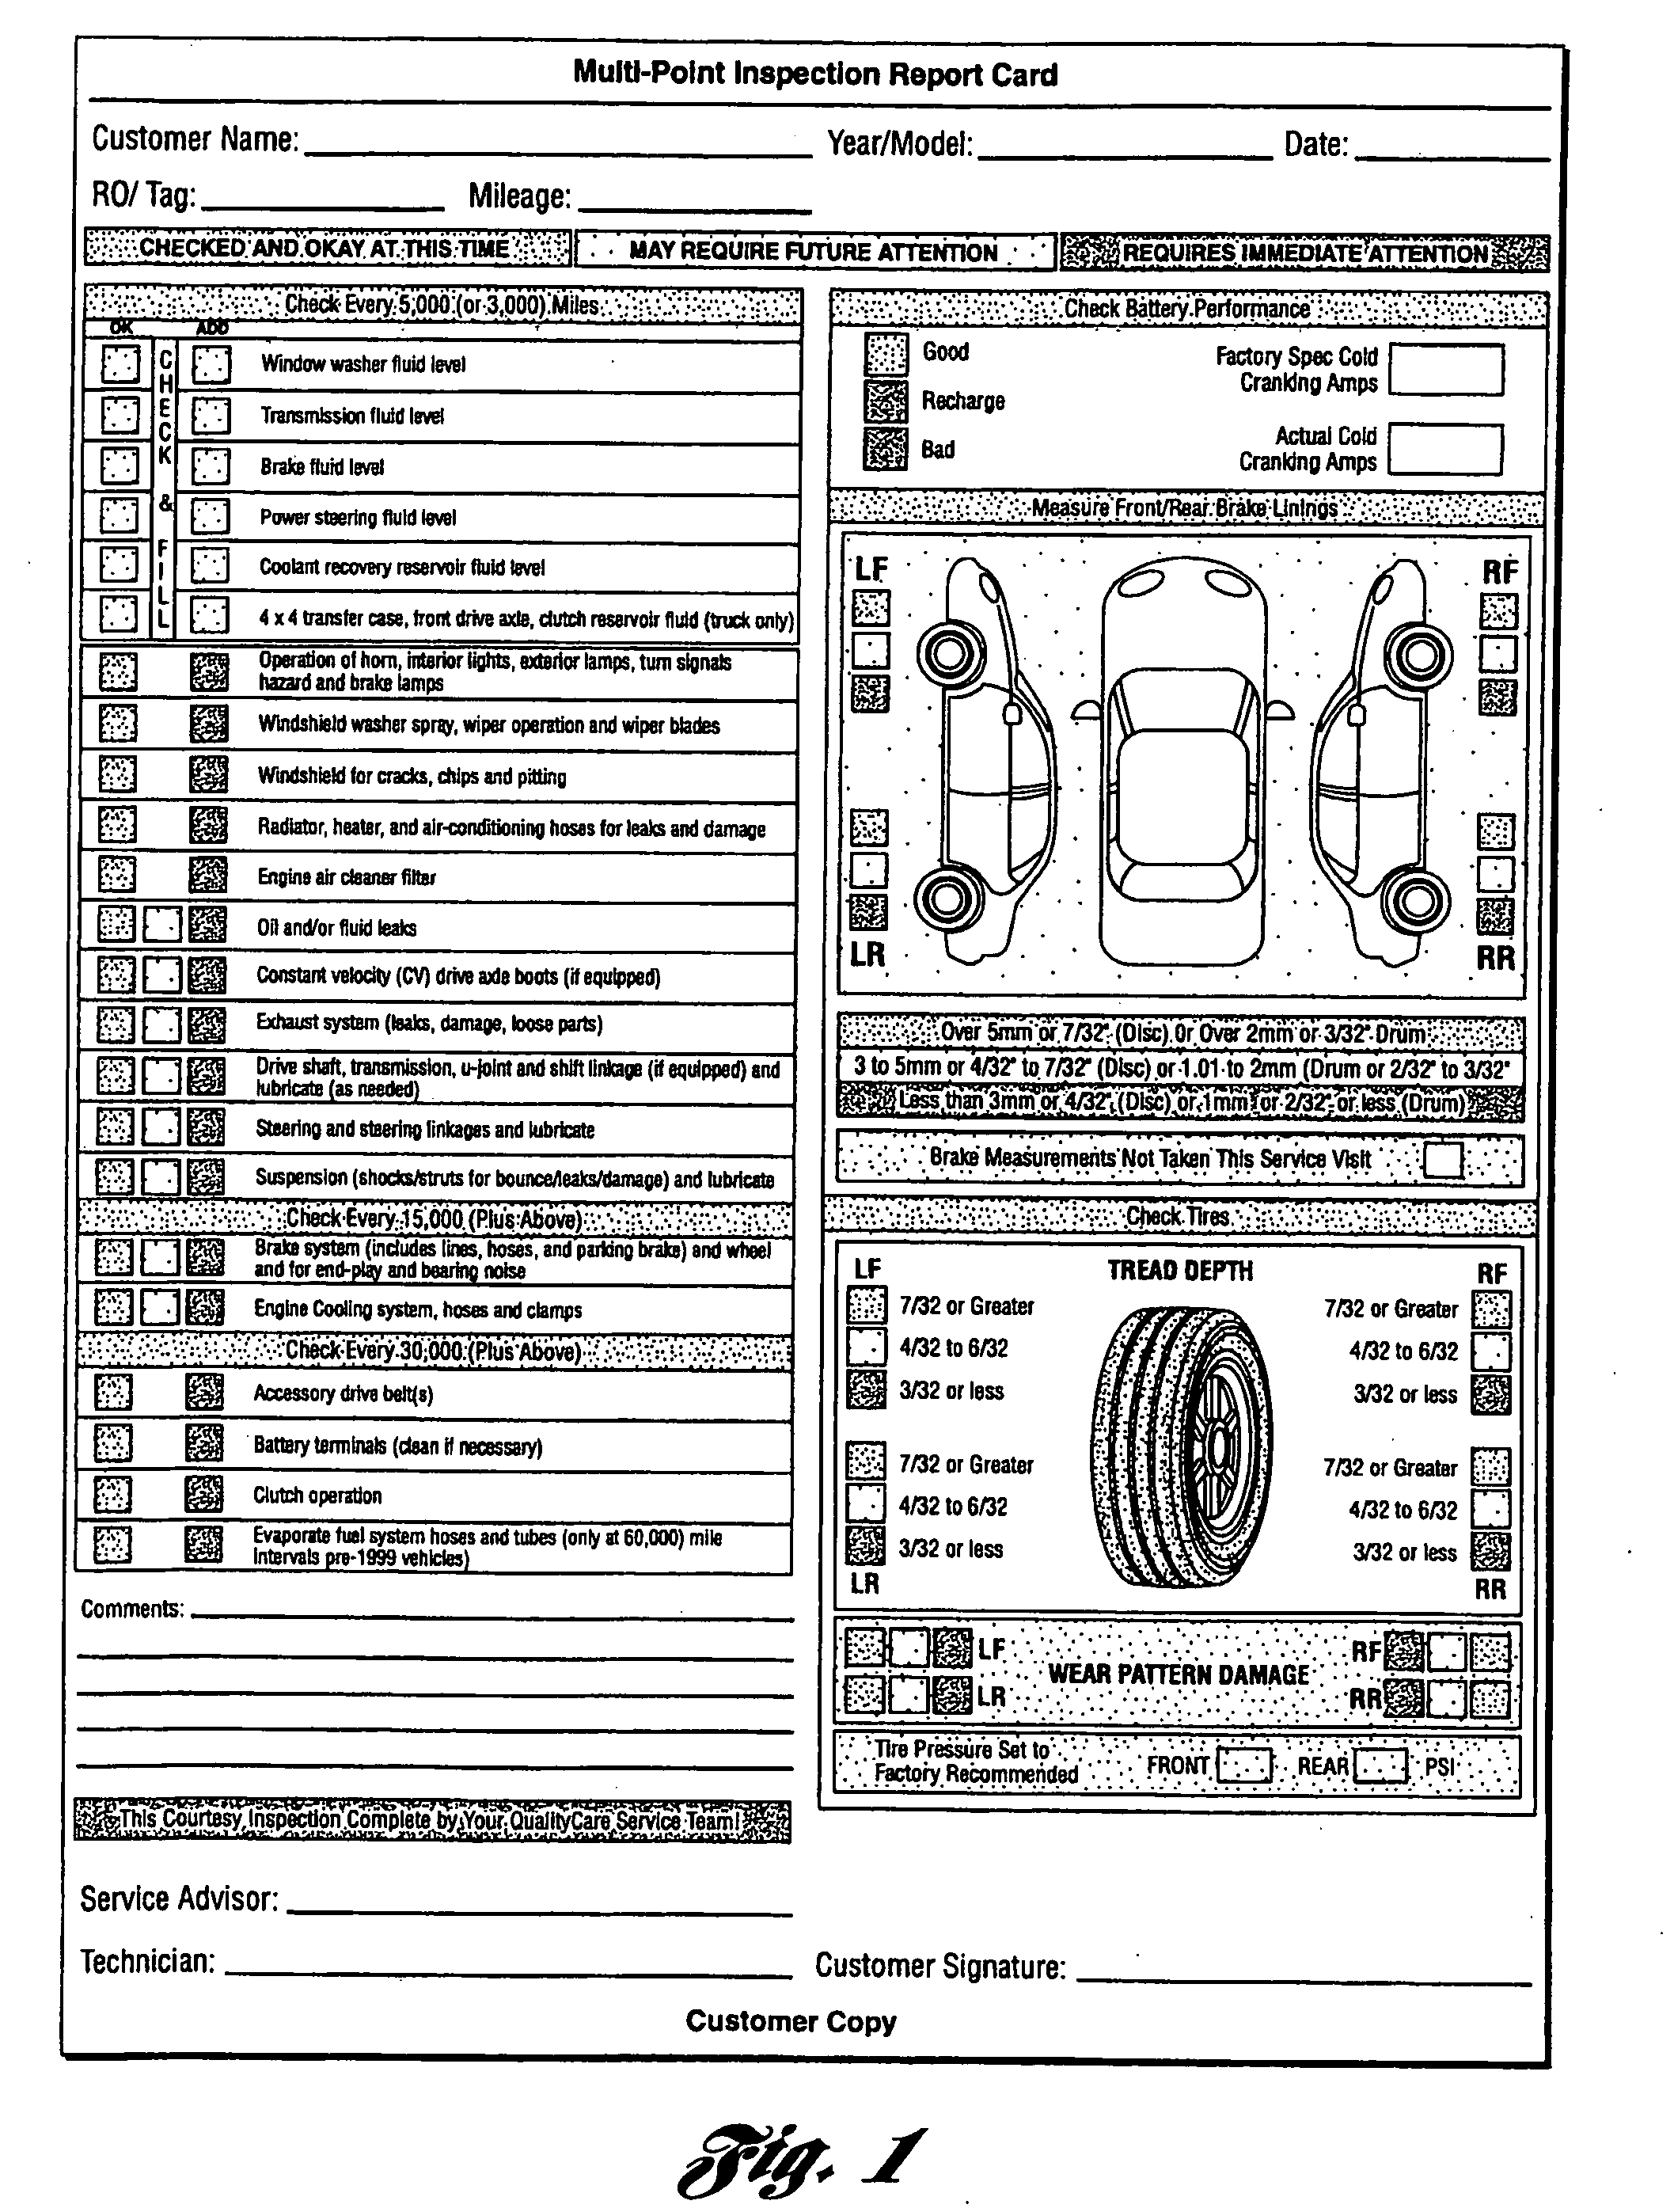 Multipoint inspection report card as by ford